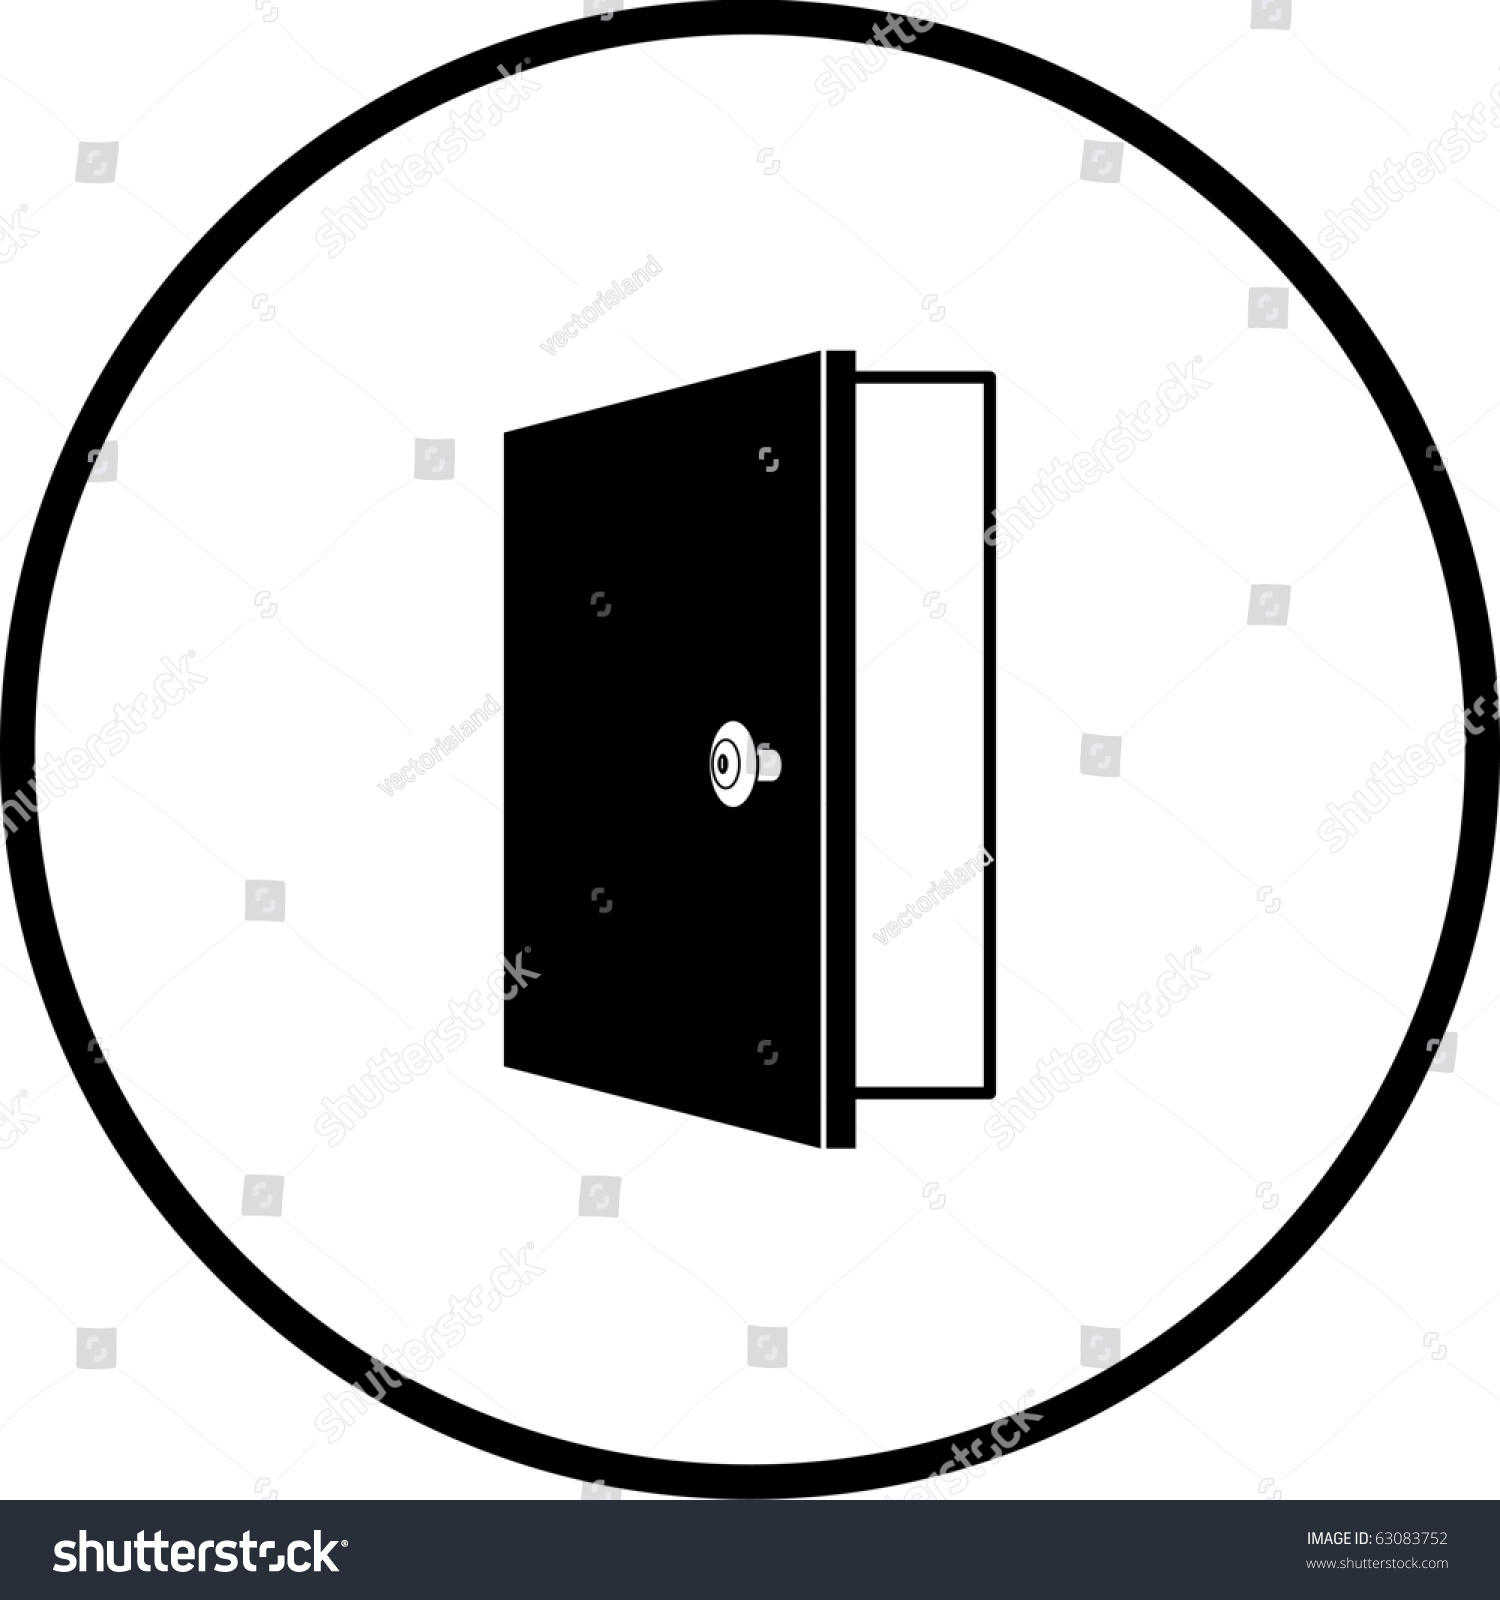 open door symbol stock illustration 63083752 shutterstock